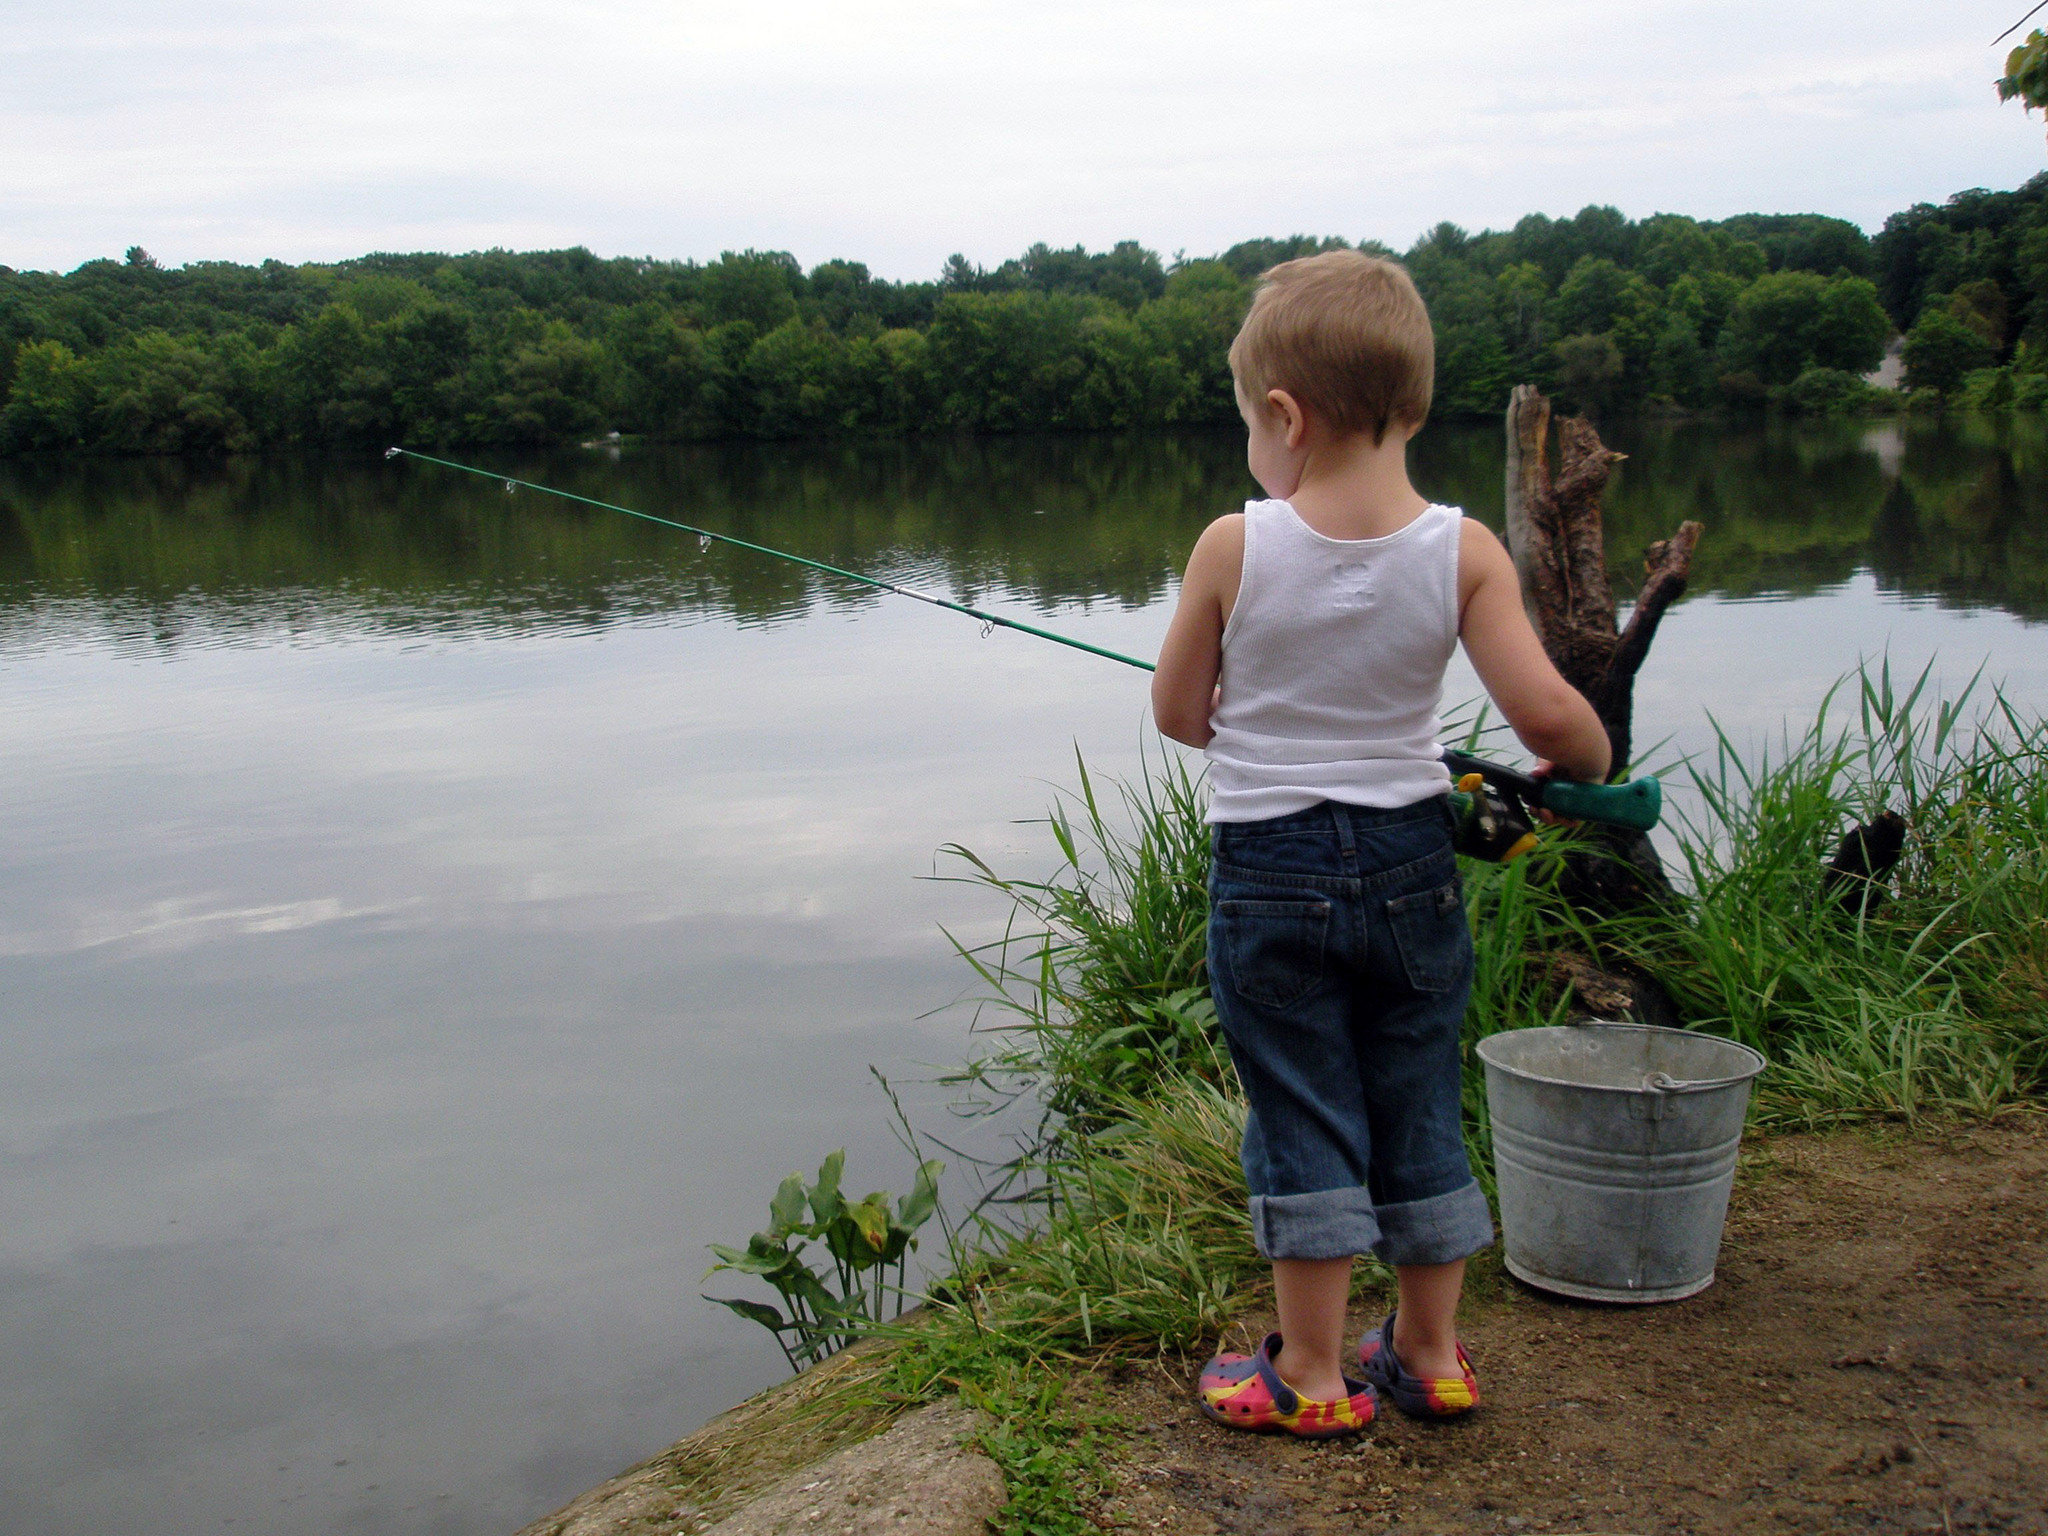 Getting children unplugged and outdoors at camp active for Fishing camps for kids